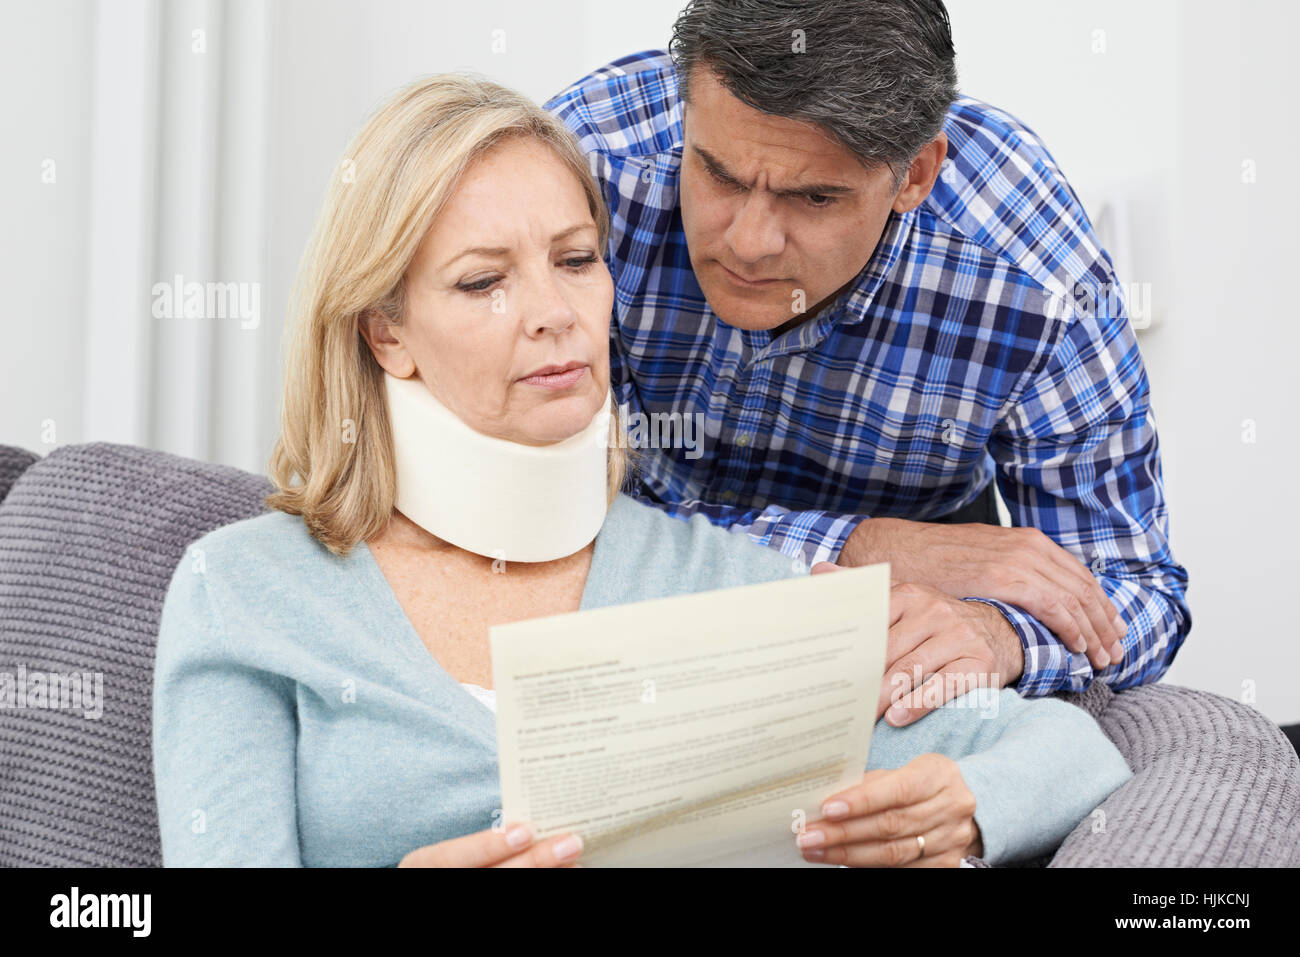 Couple Reading Letter About Woman's Injury - Stock Image